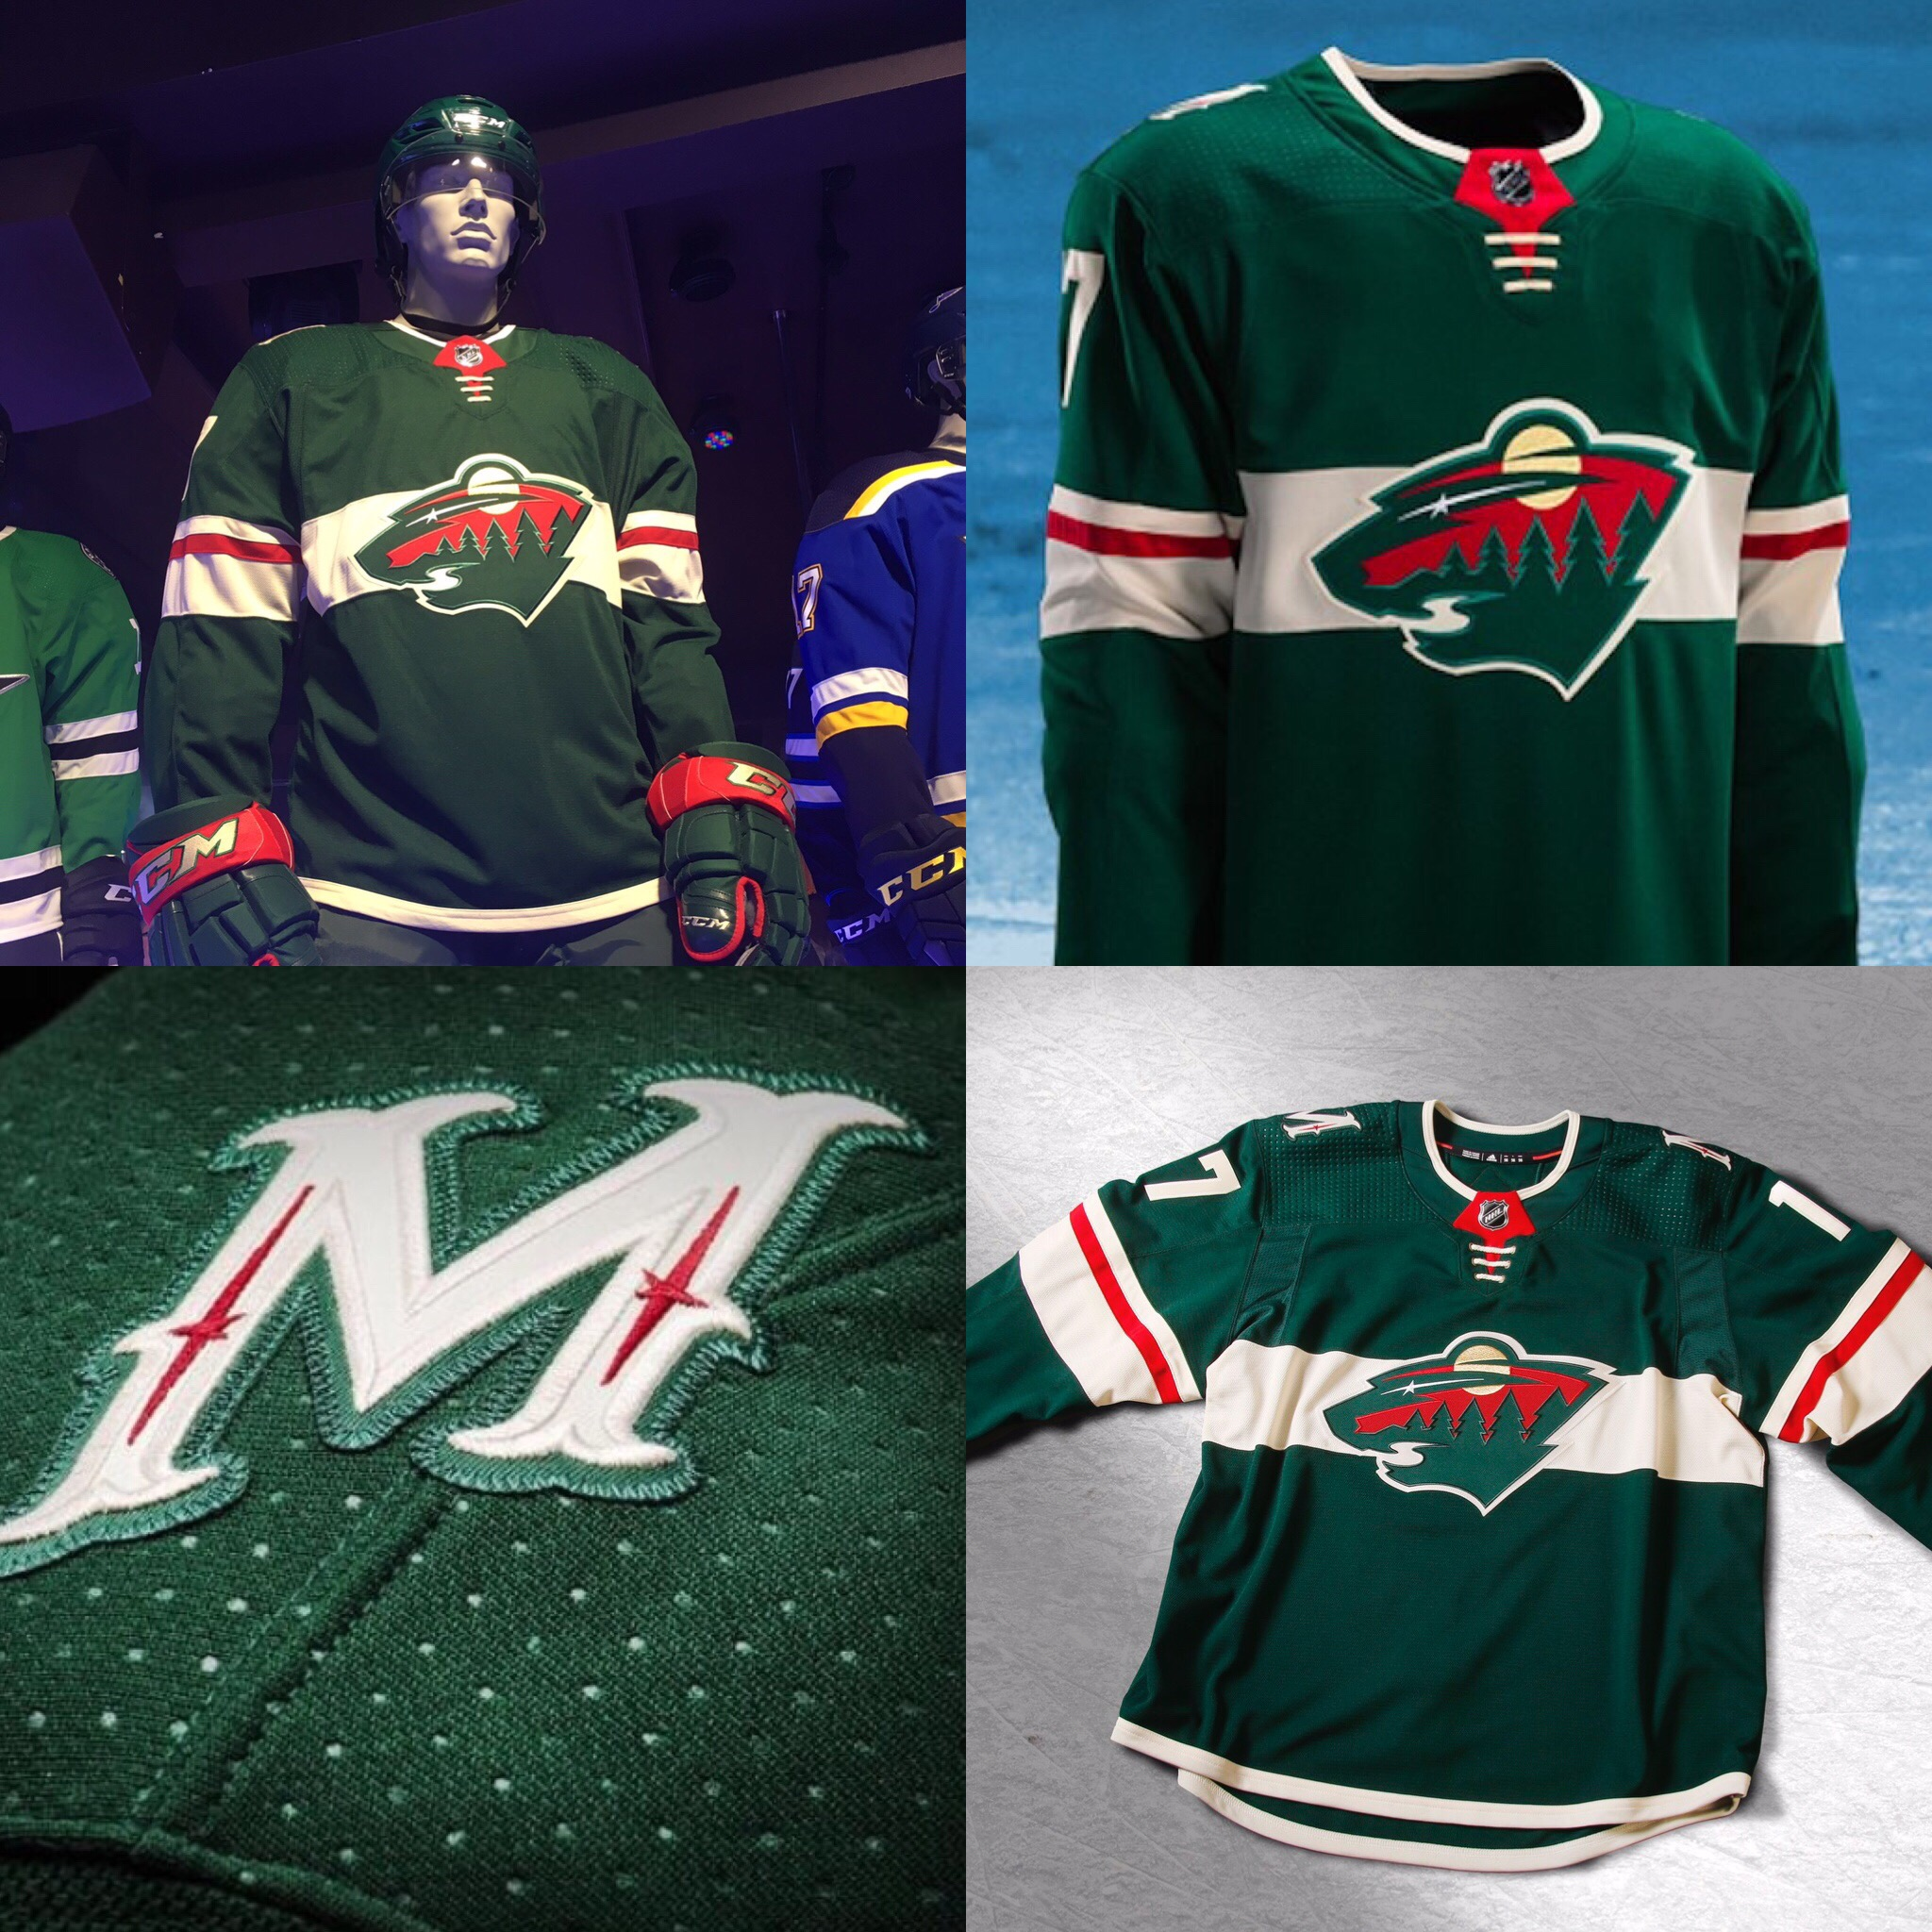 A preview picture from a few weeks back suggested that the Wild were going  to be making some changes with their home greens by adding a cream-colored  ... 6ecf6d40e80